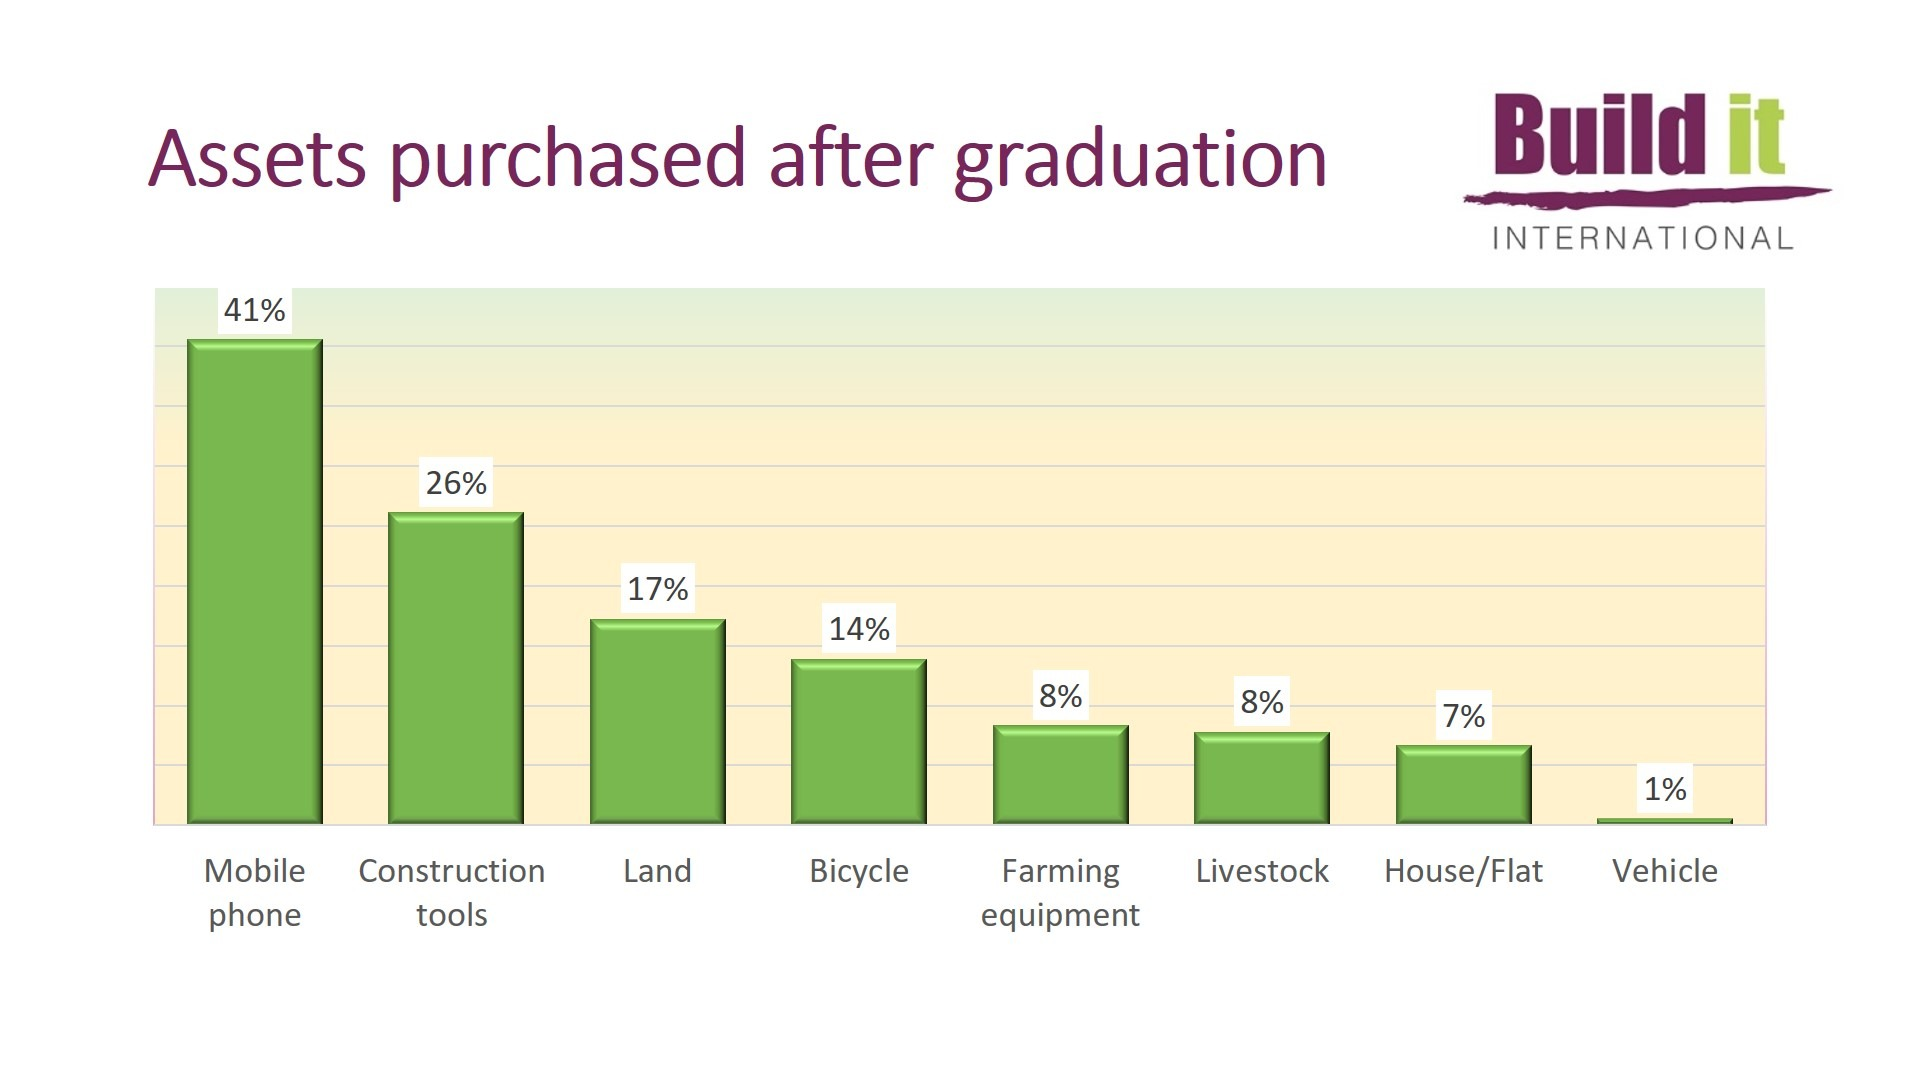 Graph showing assets purchased after graduation - 2020 Impact Study